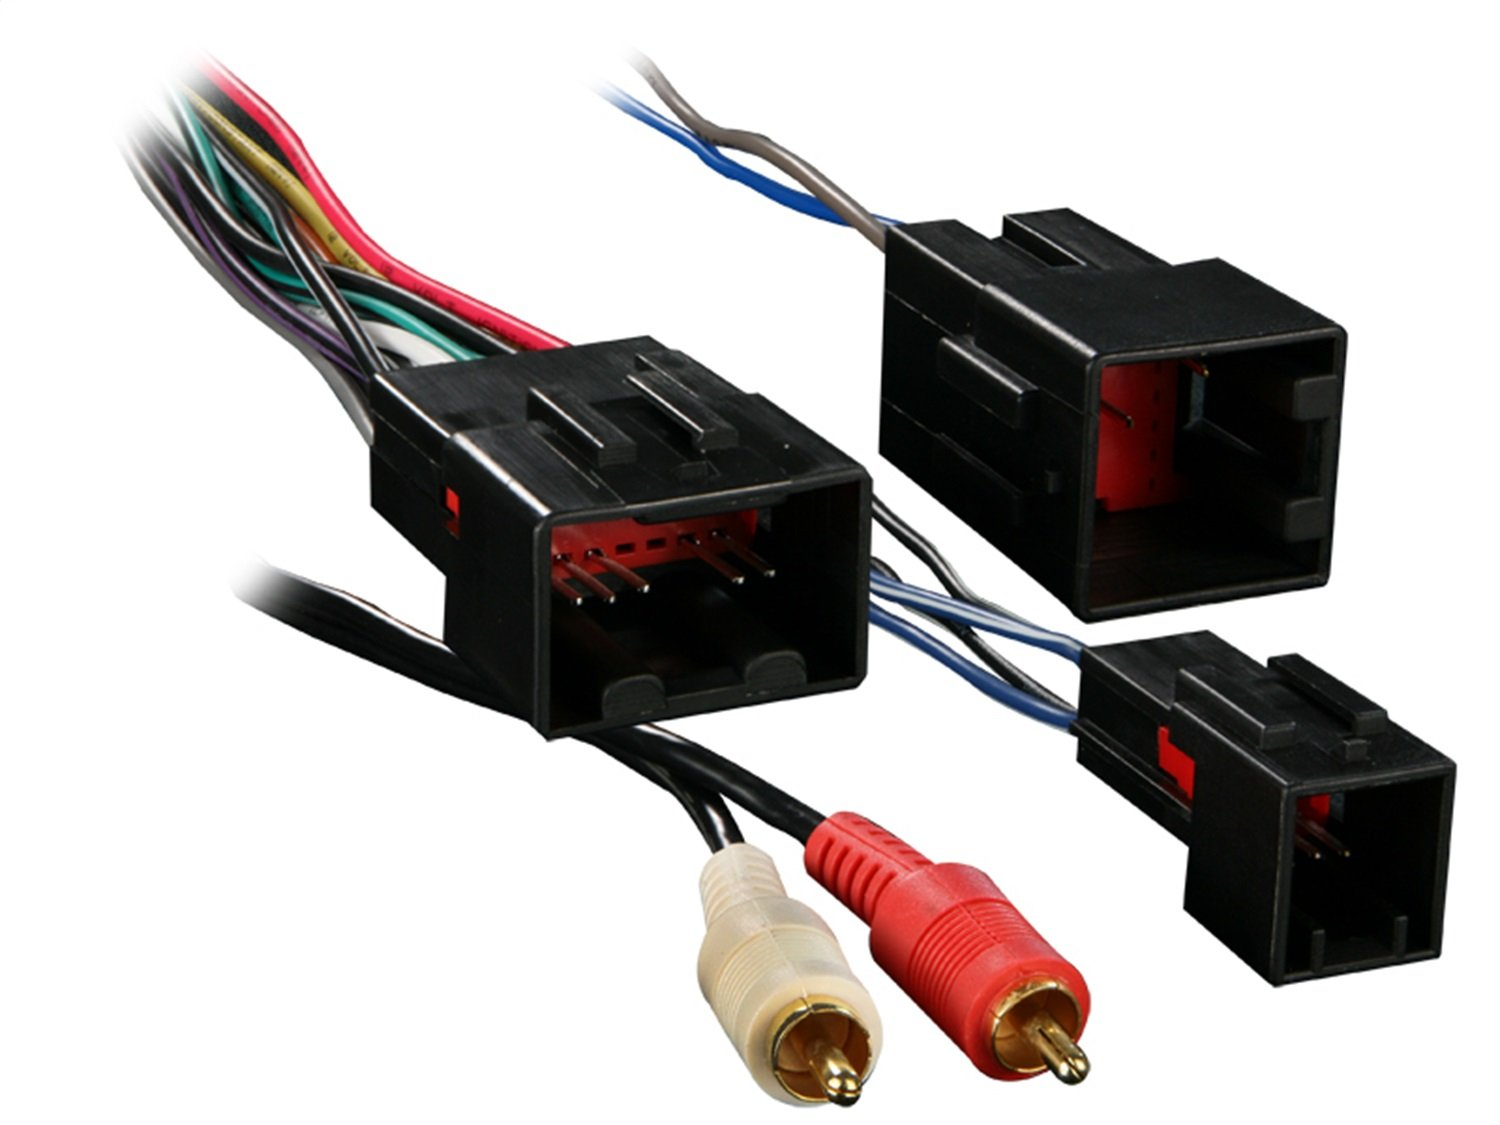 Metra 70 5701 Wiring Harness For Select Ford Vehicles Industrial 460 Diagram With Premium Sound And Rca Car Electronics